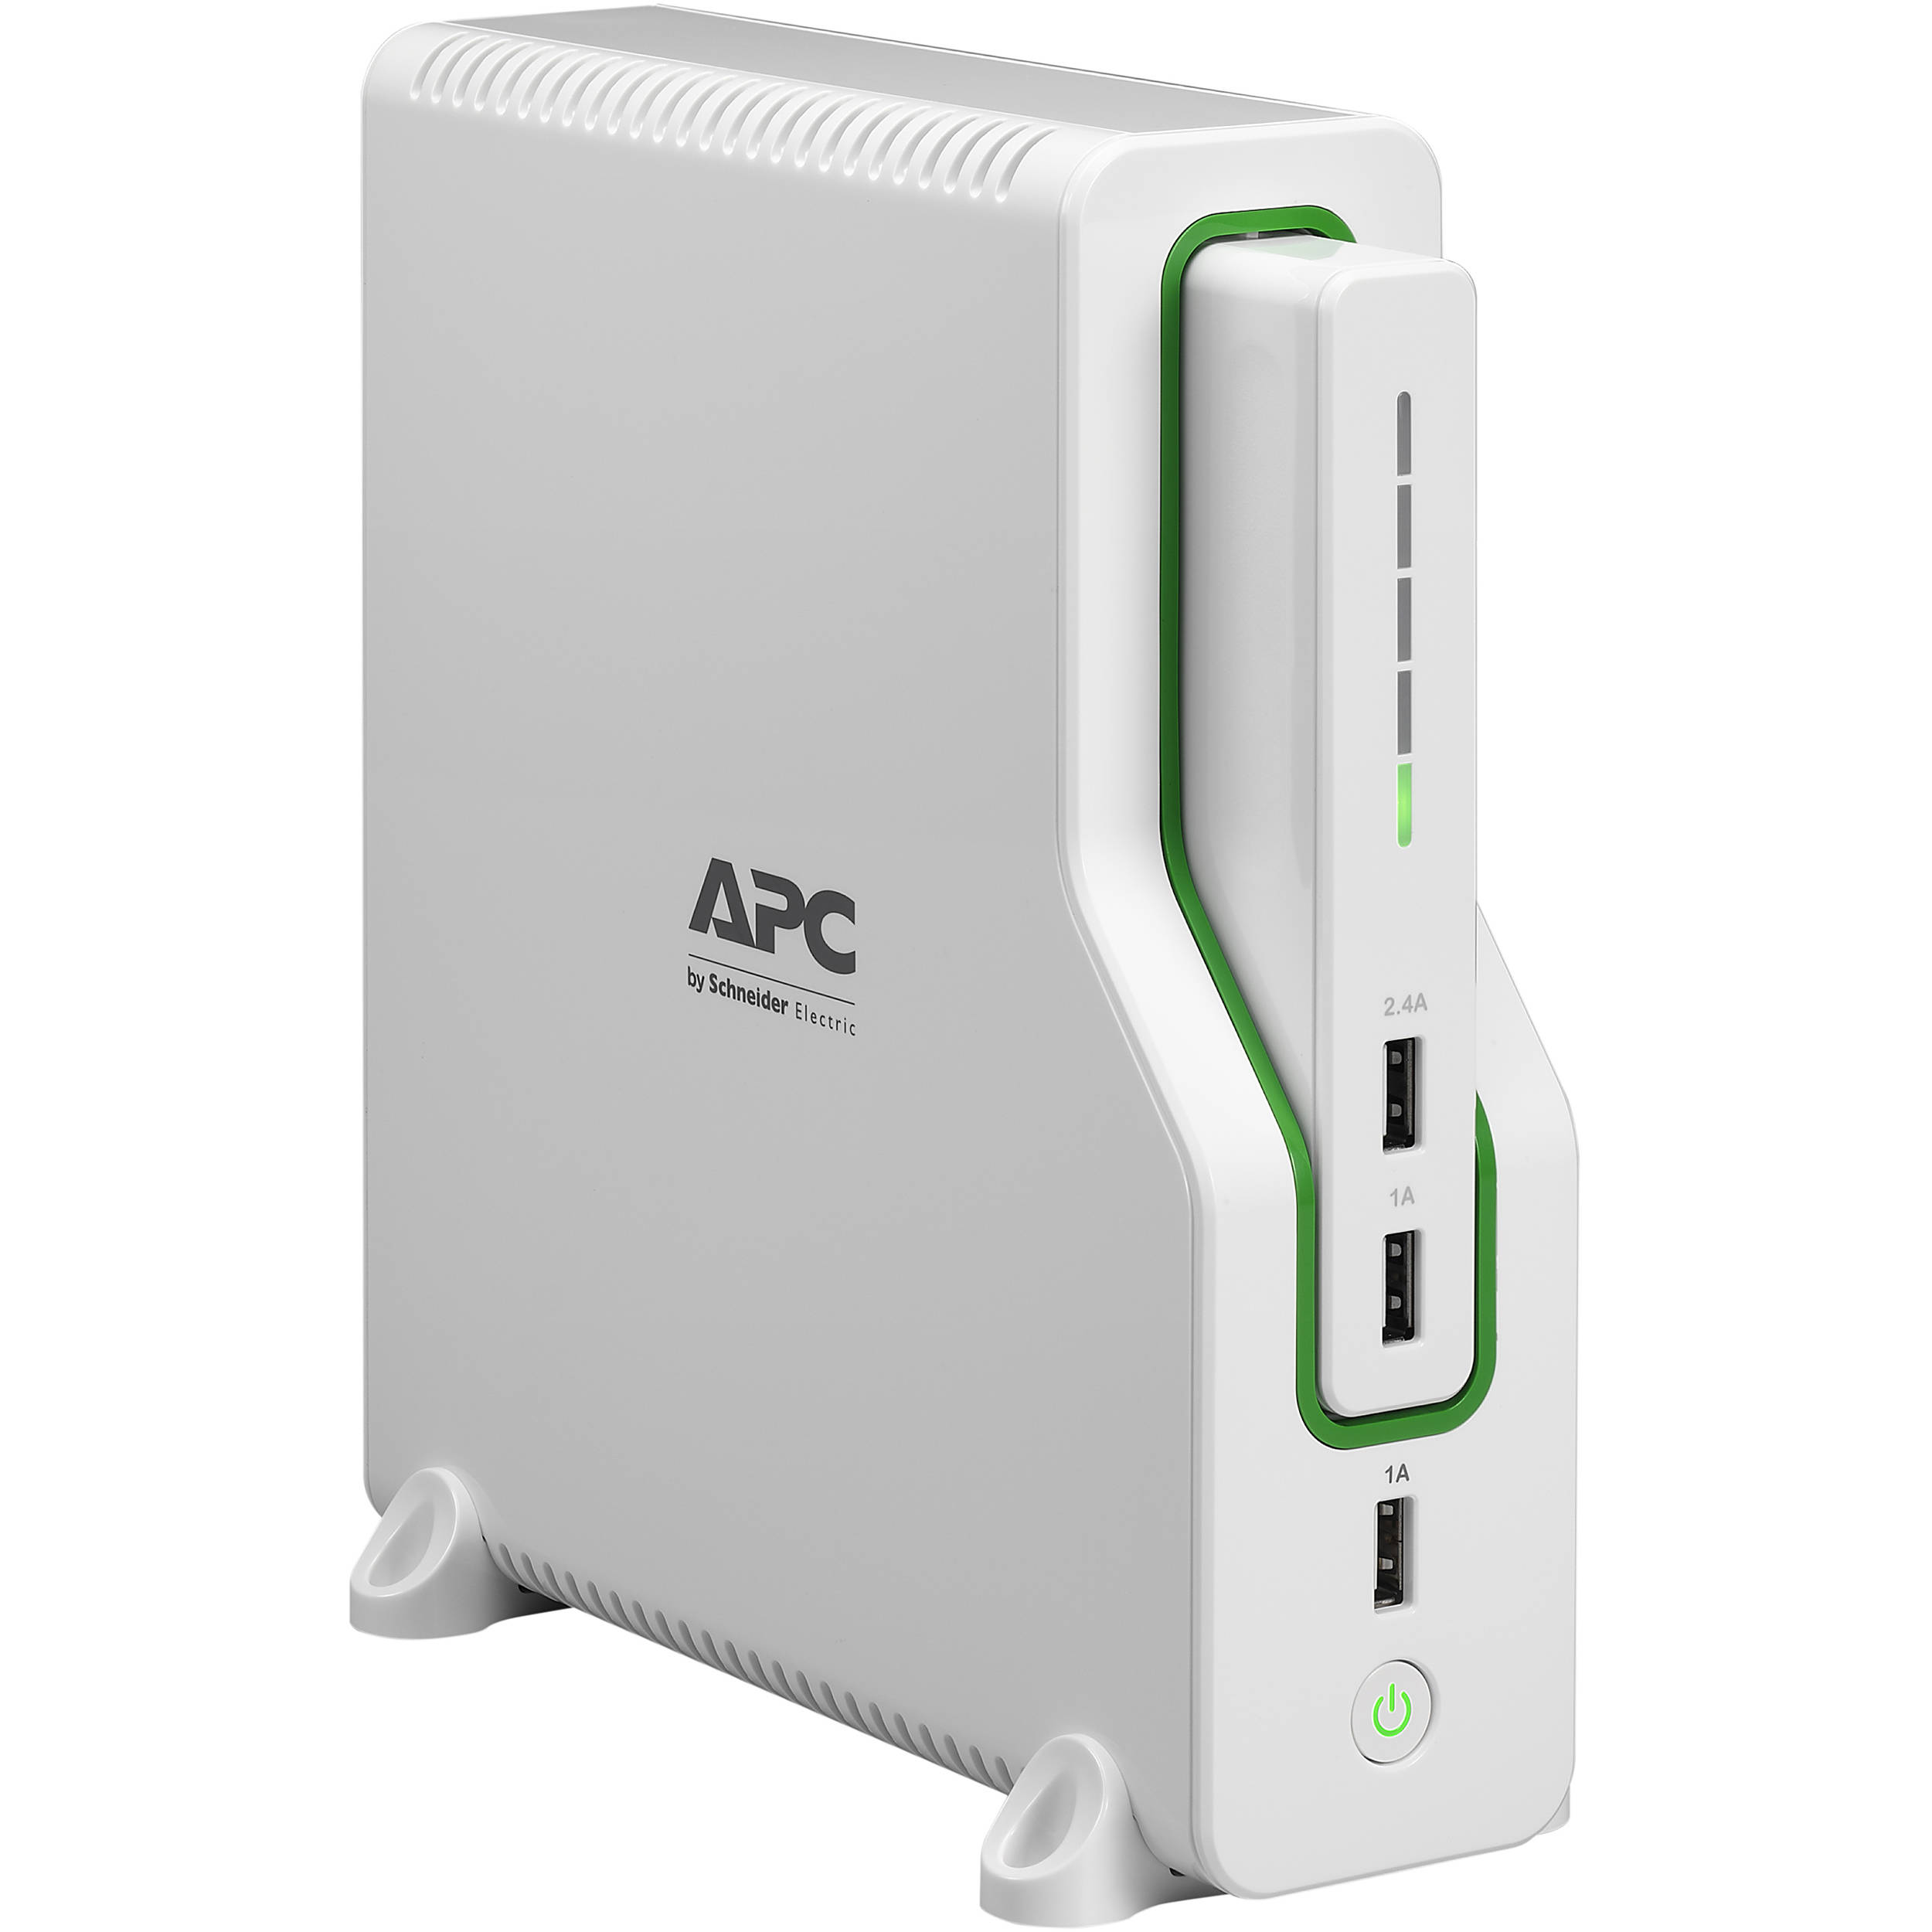 Apc Back Ups Connect Bge50ml Bh Photo Video Wiring220voltaircompressor Routing Nema 6 30r Plug Cable From Air